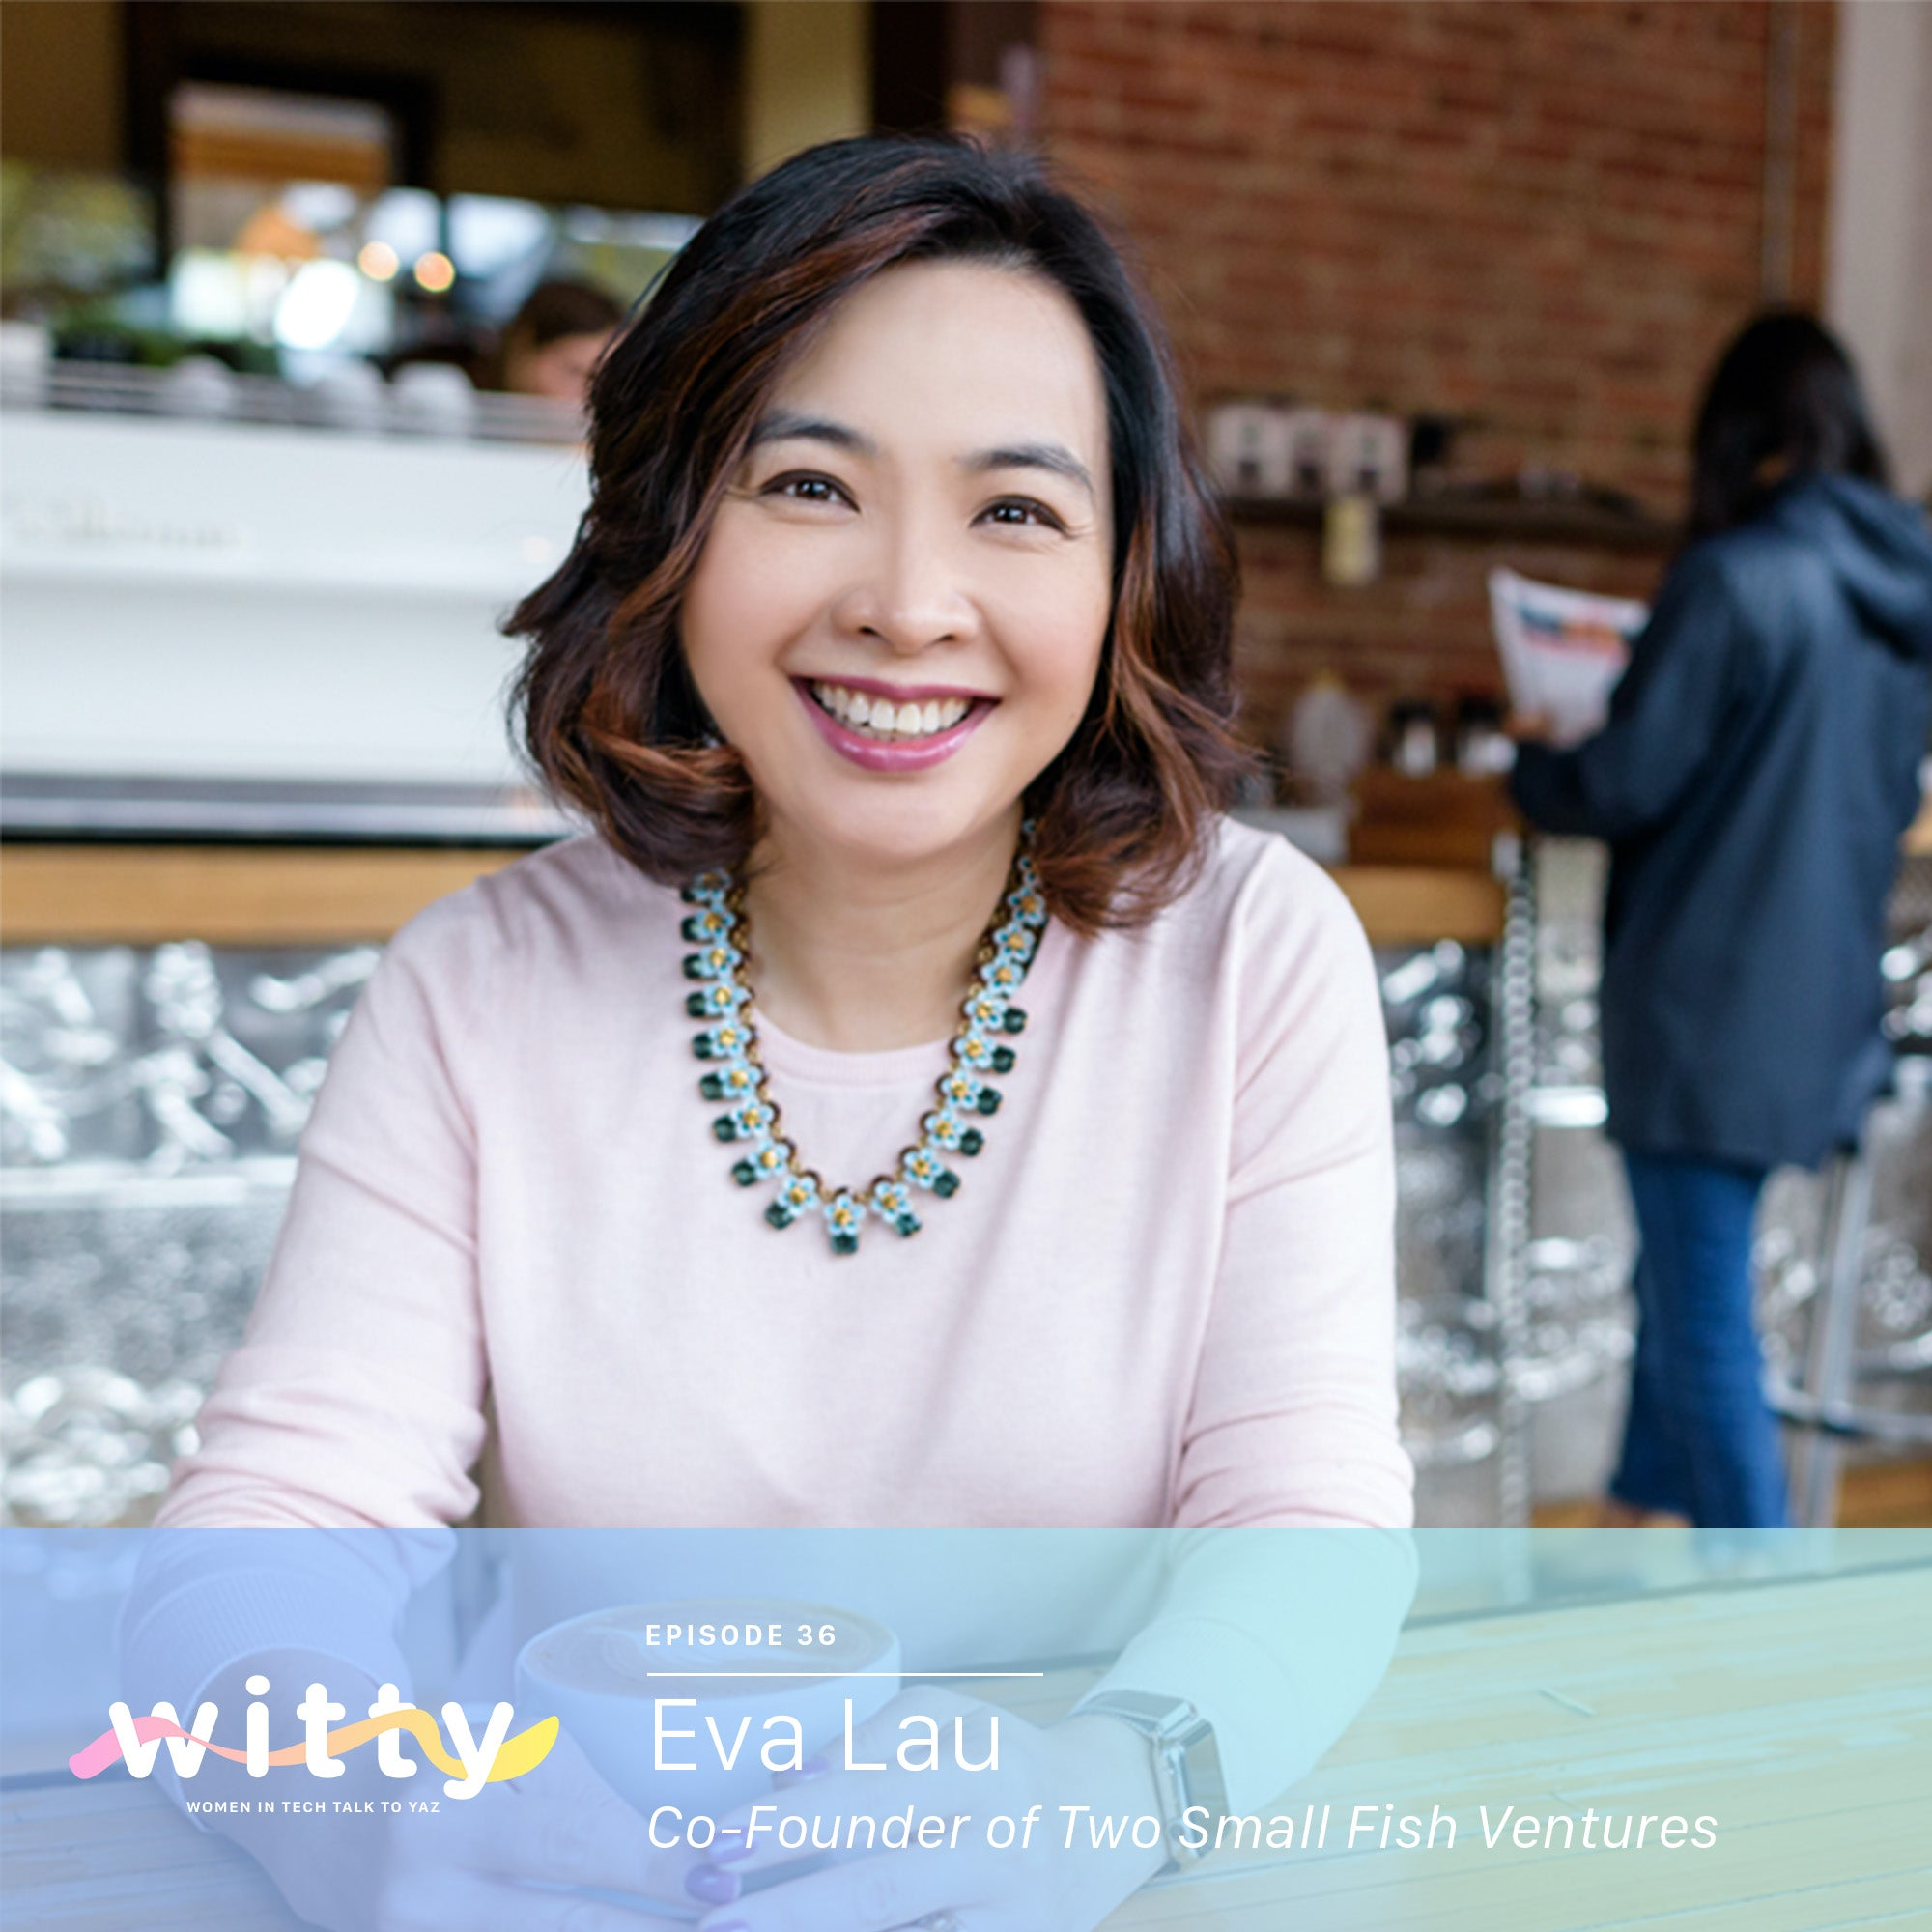 Ep. 36: The elephant in the room (Eva Lau)